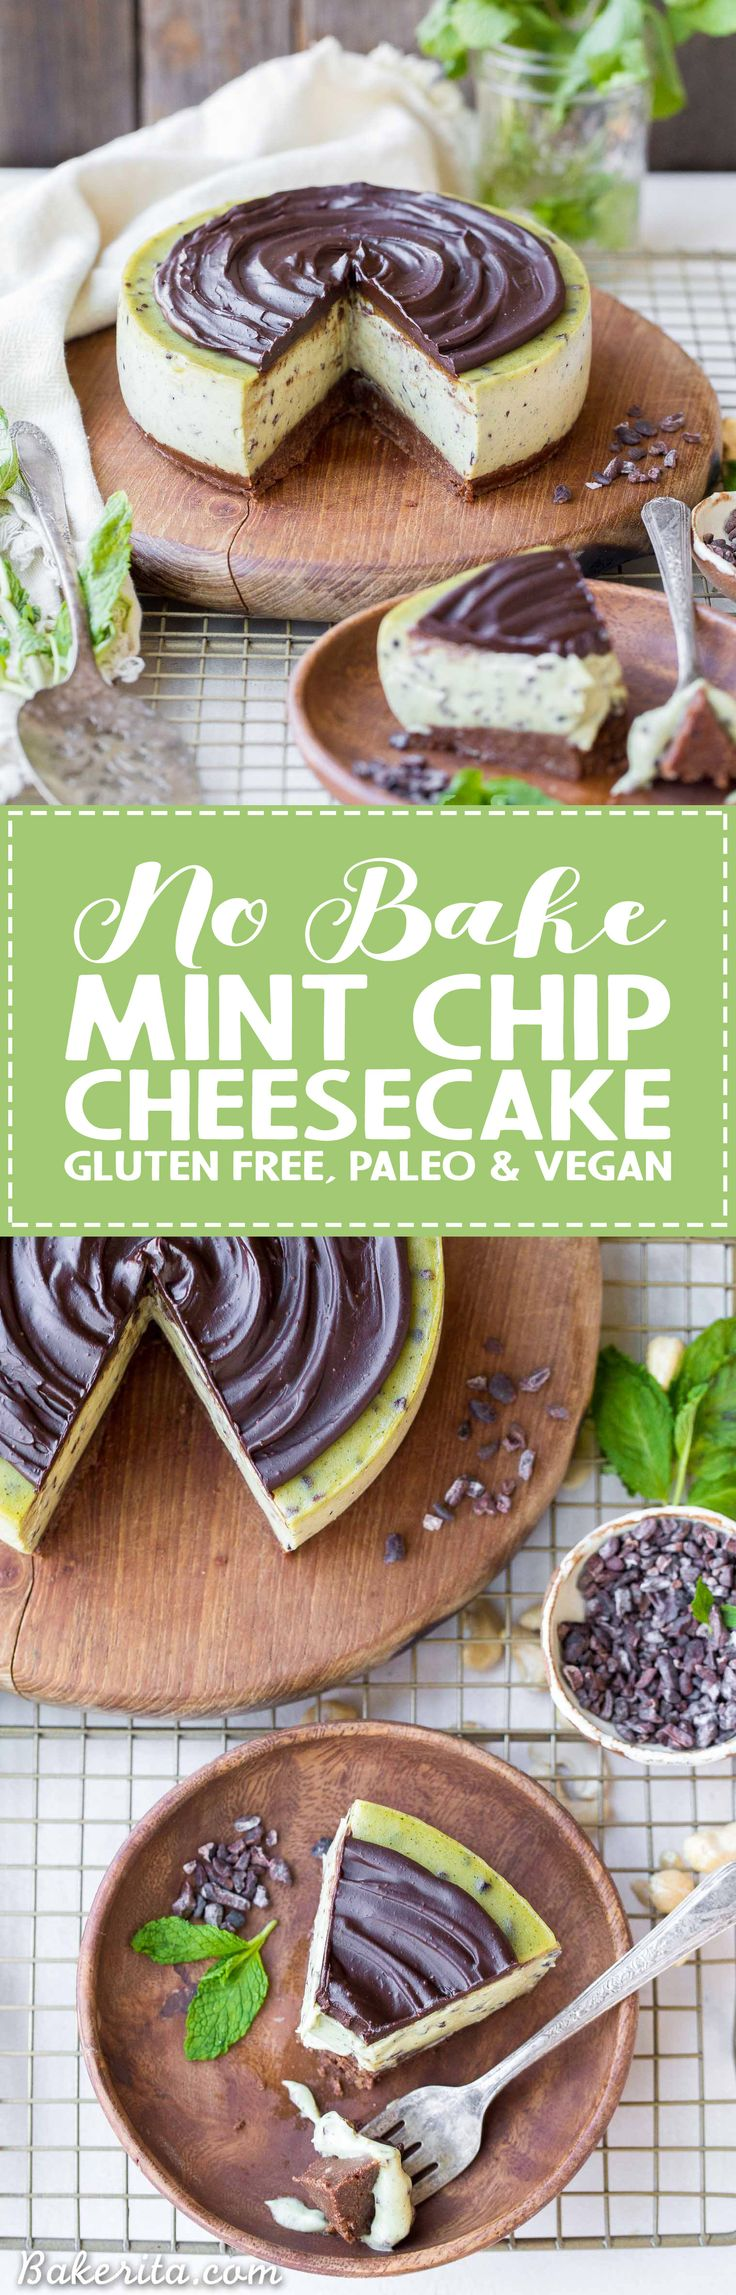 This No Bake Mint Chip Cheesecake is a healthier paleo and vegan cheesecake, made with a creamy cashew base. It has a nutty chocolate crust and a smooth and minty filling, with crunchy cacao nibs throughout and creamy dark chocolate ganache on top. #ad @sprouts